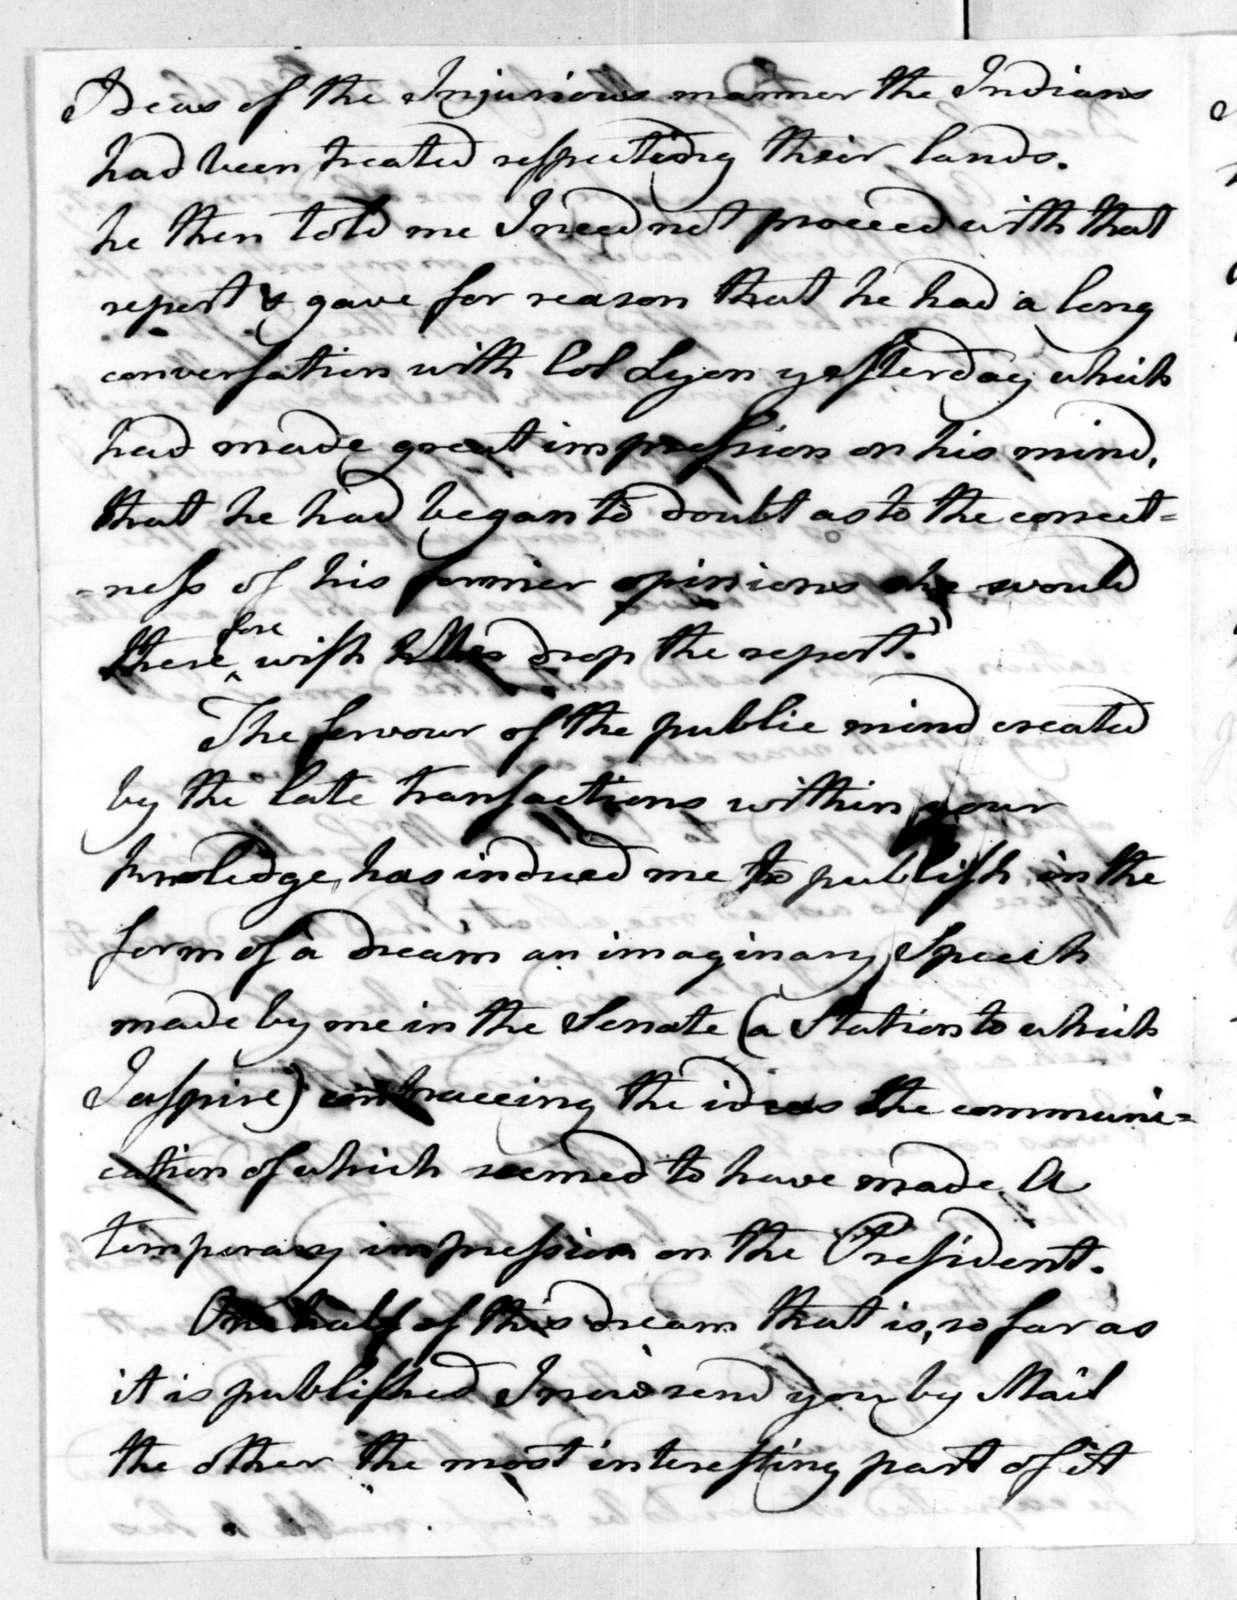 Matthew Lyon to Andrew Jackson, August 26, 1816